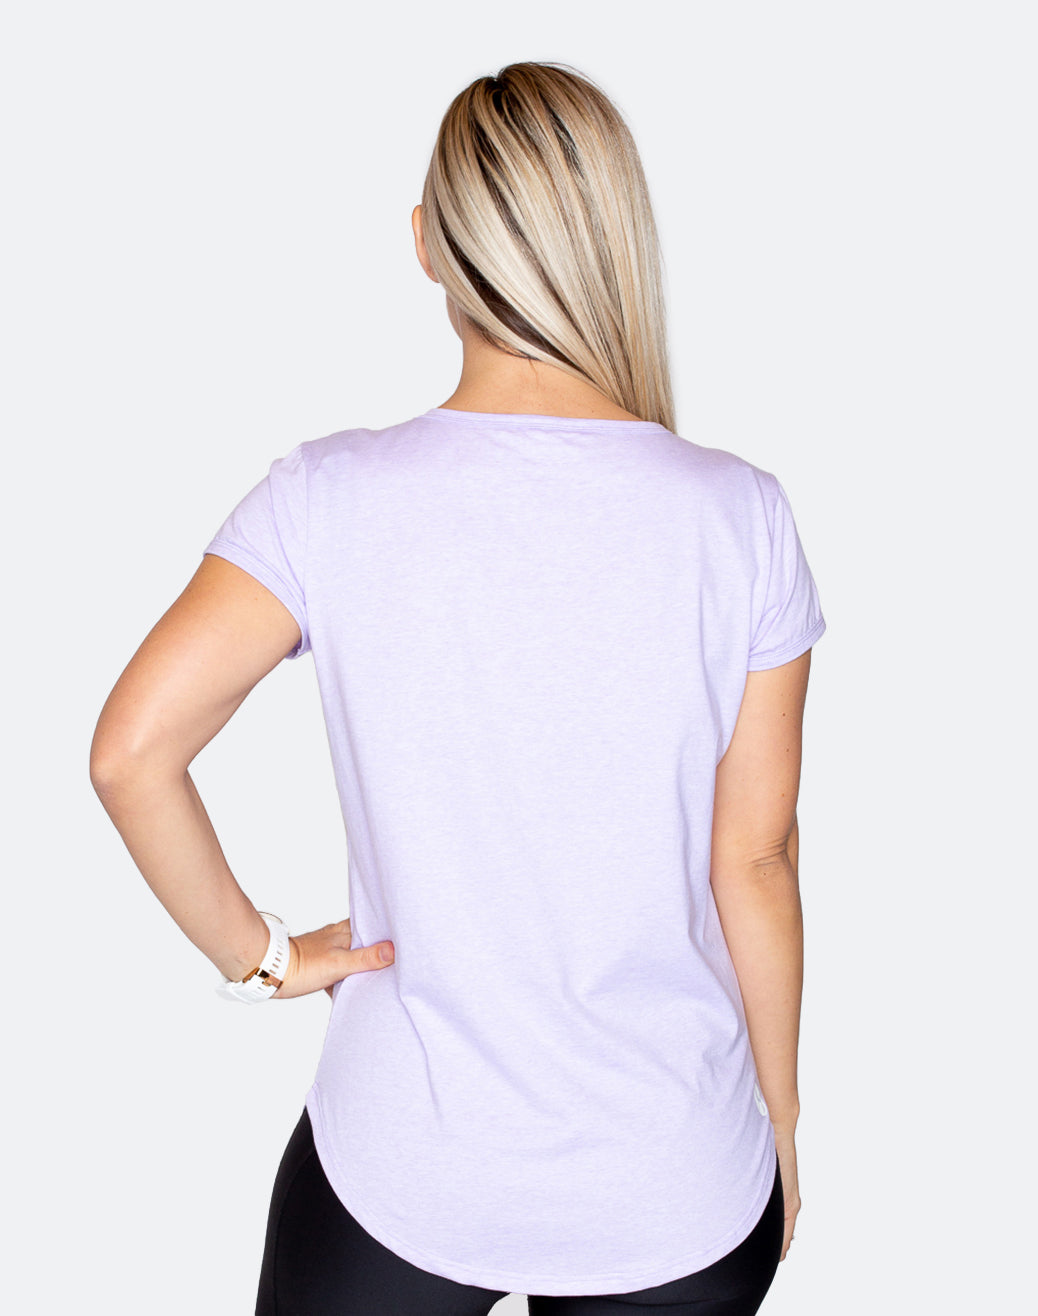 side view of an active mum in a lilac breastfeeding workout t-shirt